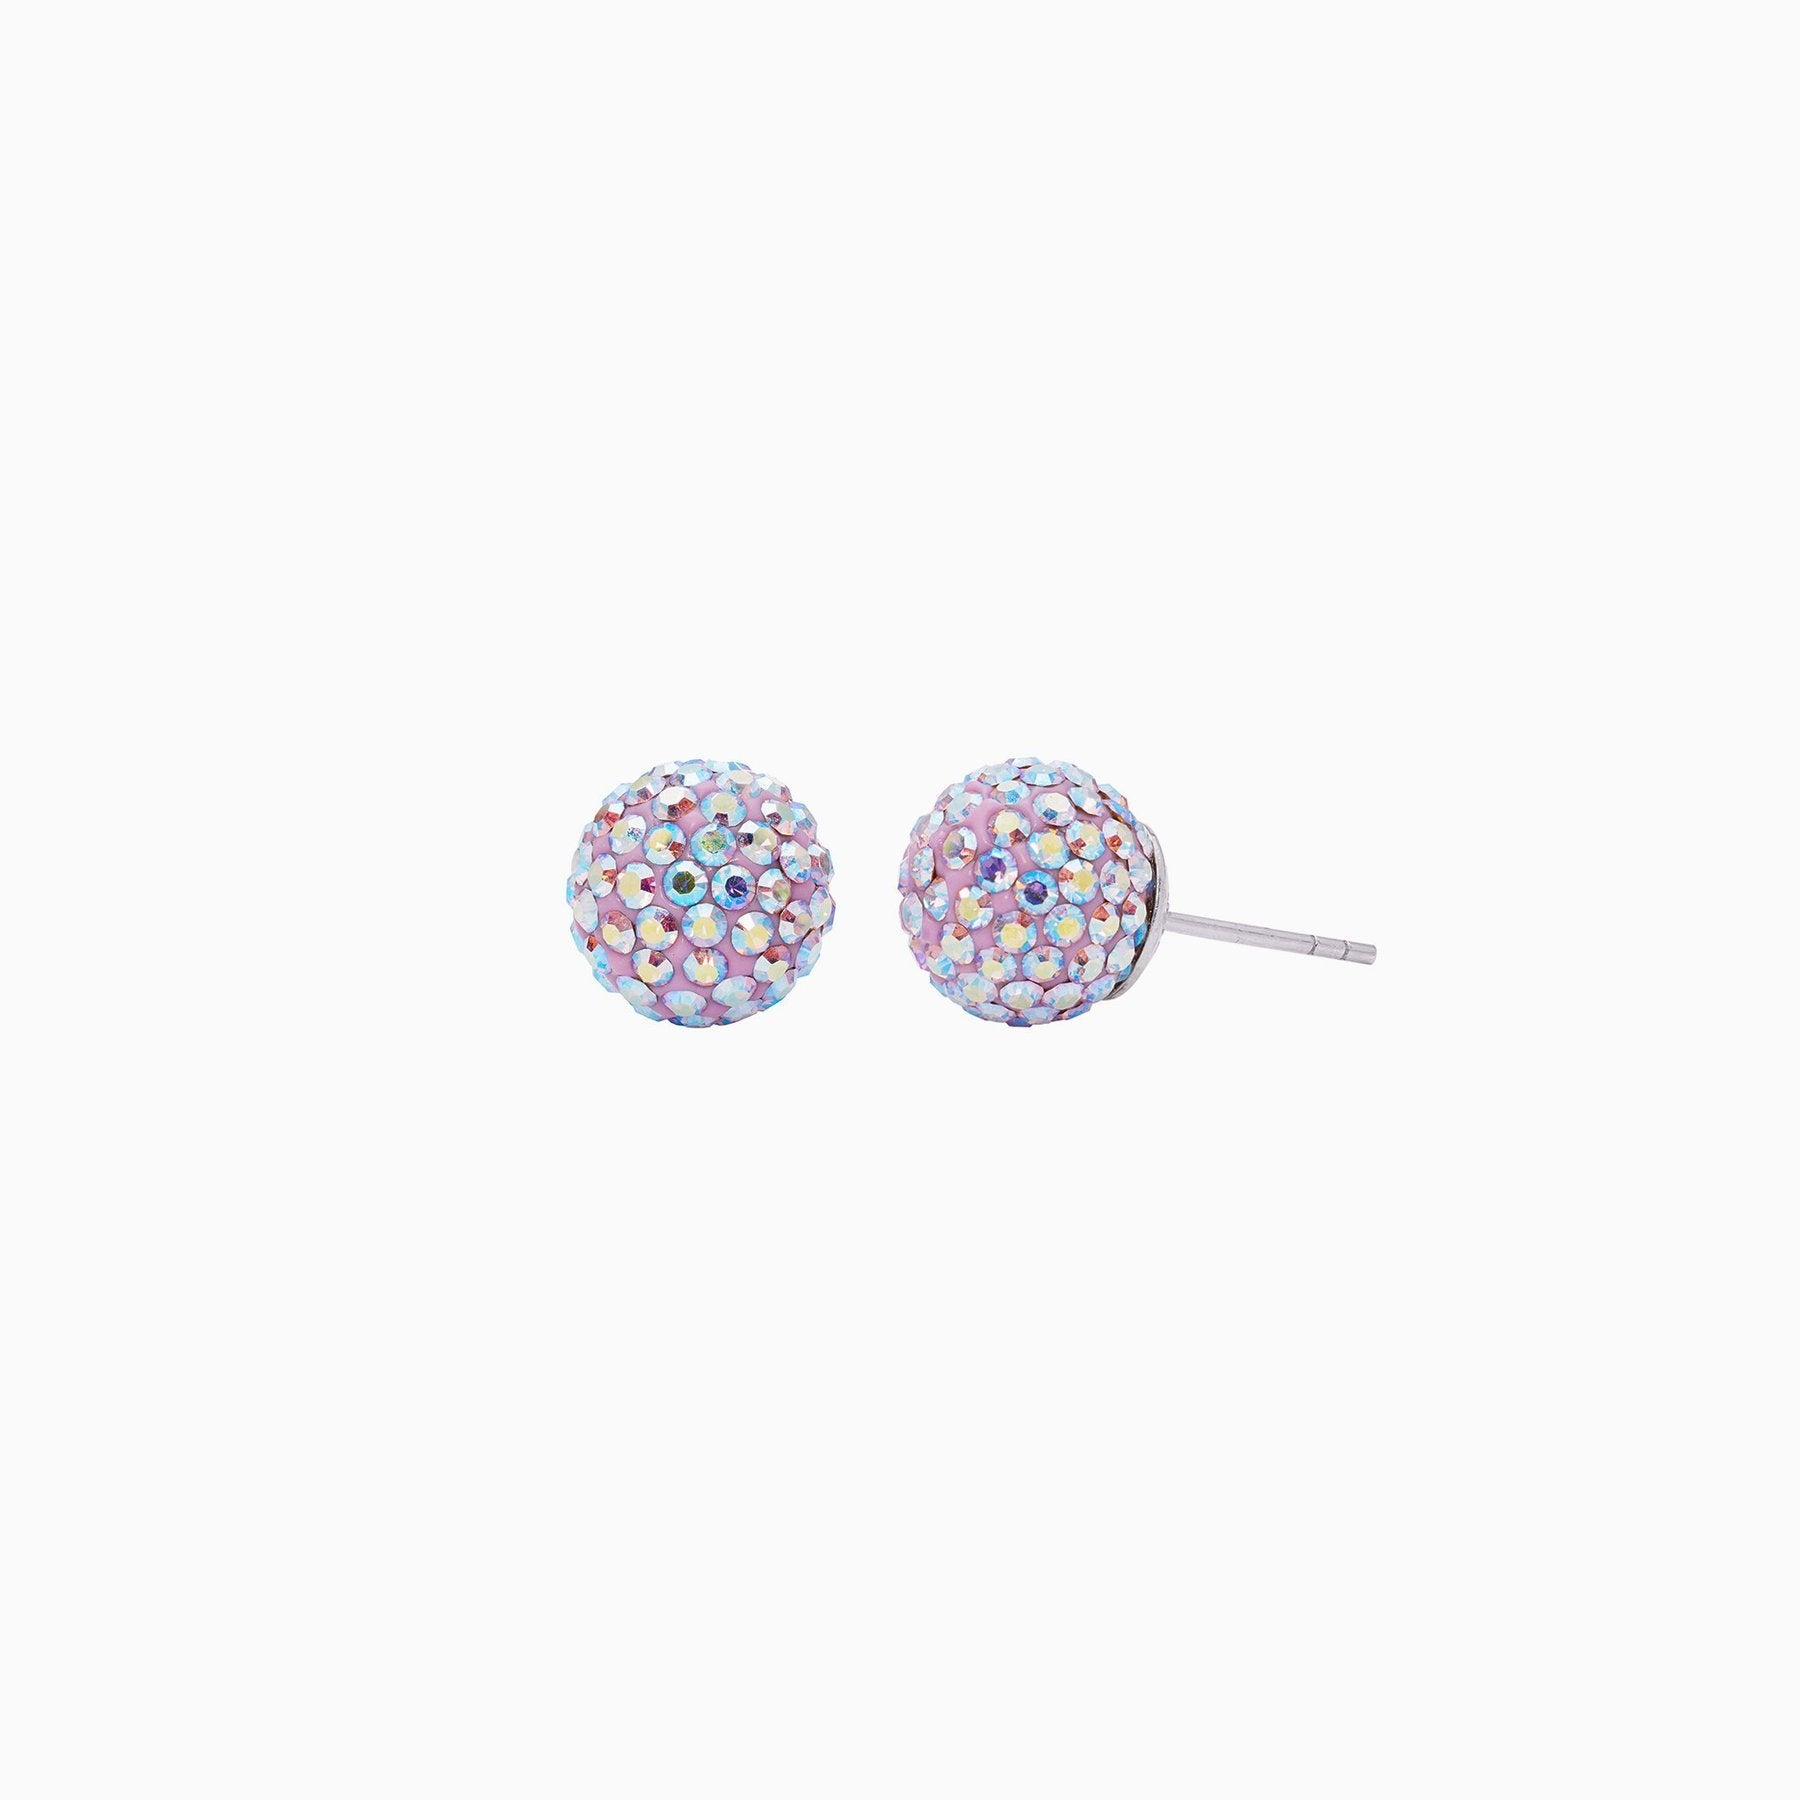 H&B Sparkle Ball™ Stud Earrings - 10mm Lilac